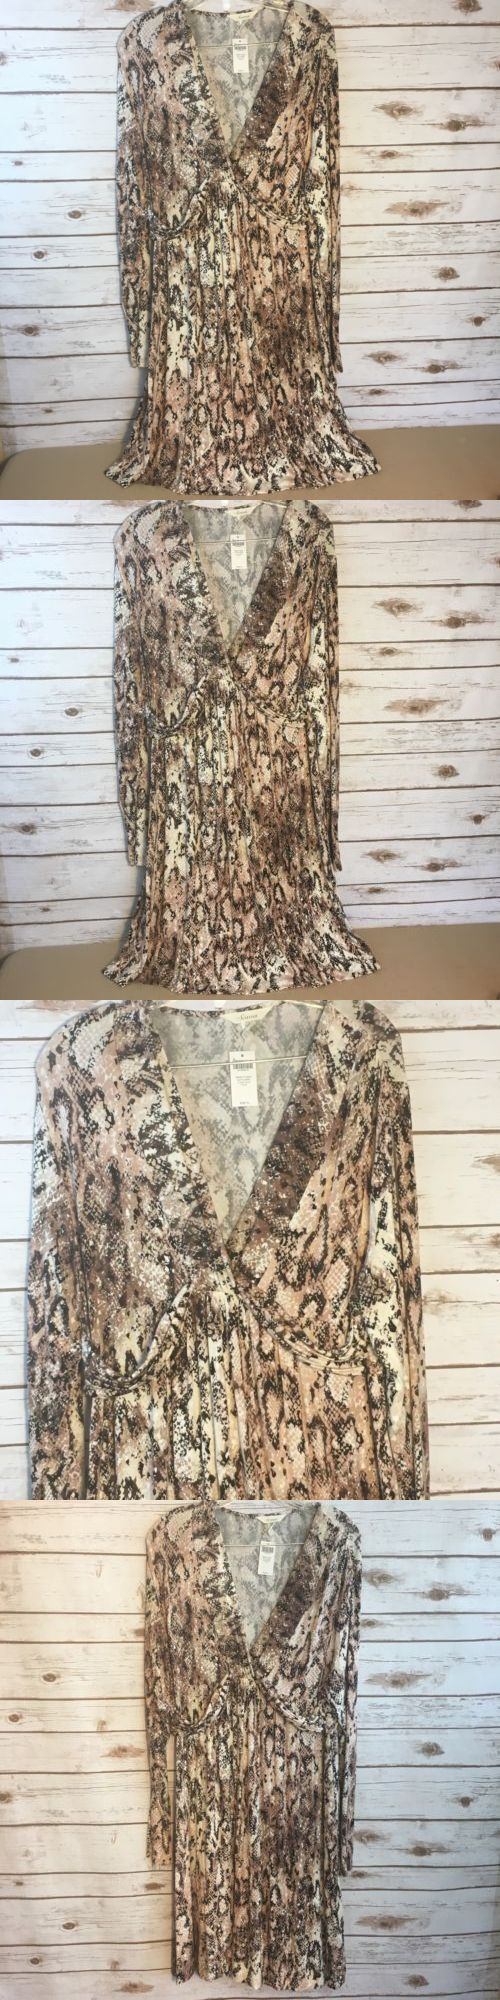 clothing and accessories: Soma Women S Brown Python Knotted Empire Long Sleeve Short Dress Size Xl -> BUY IT NOW ONLY: $35.99 on eBay!